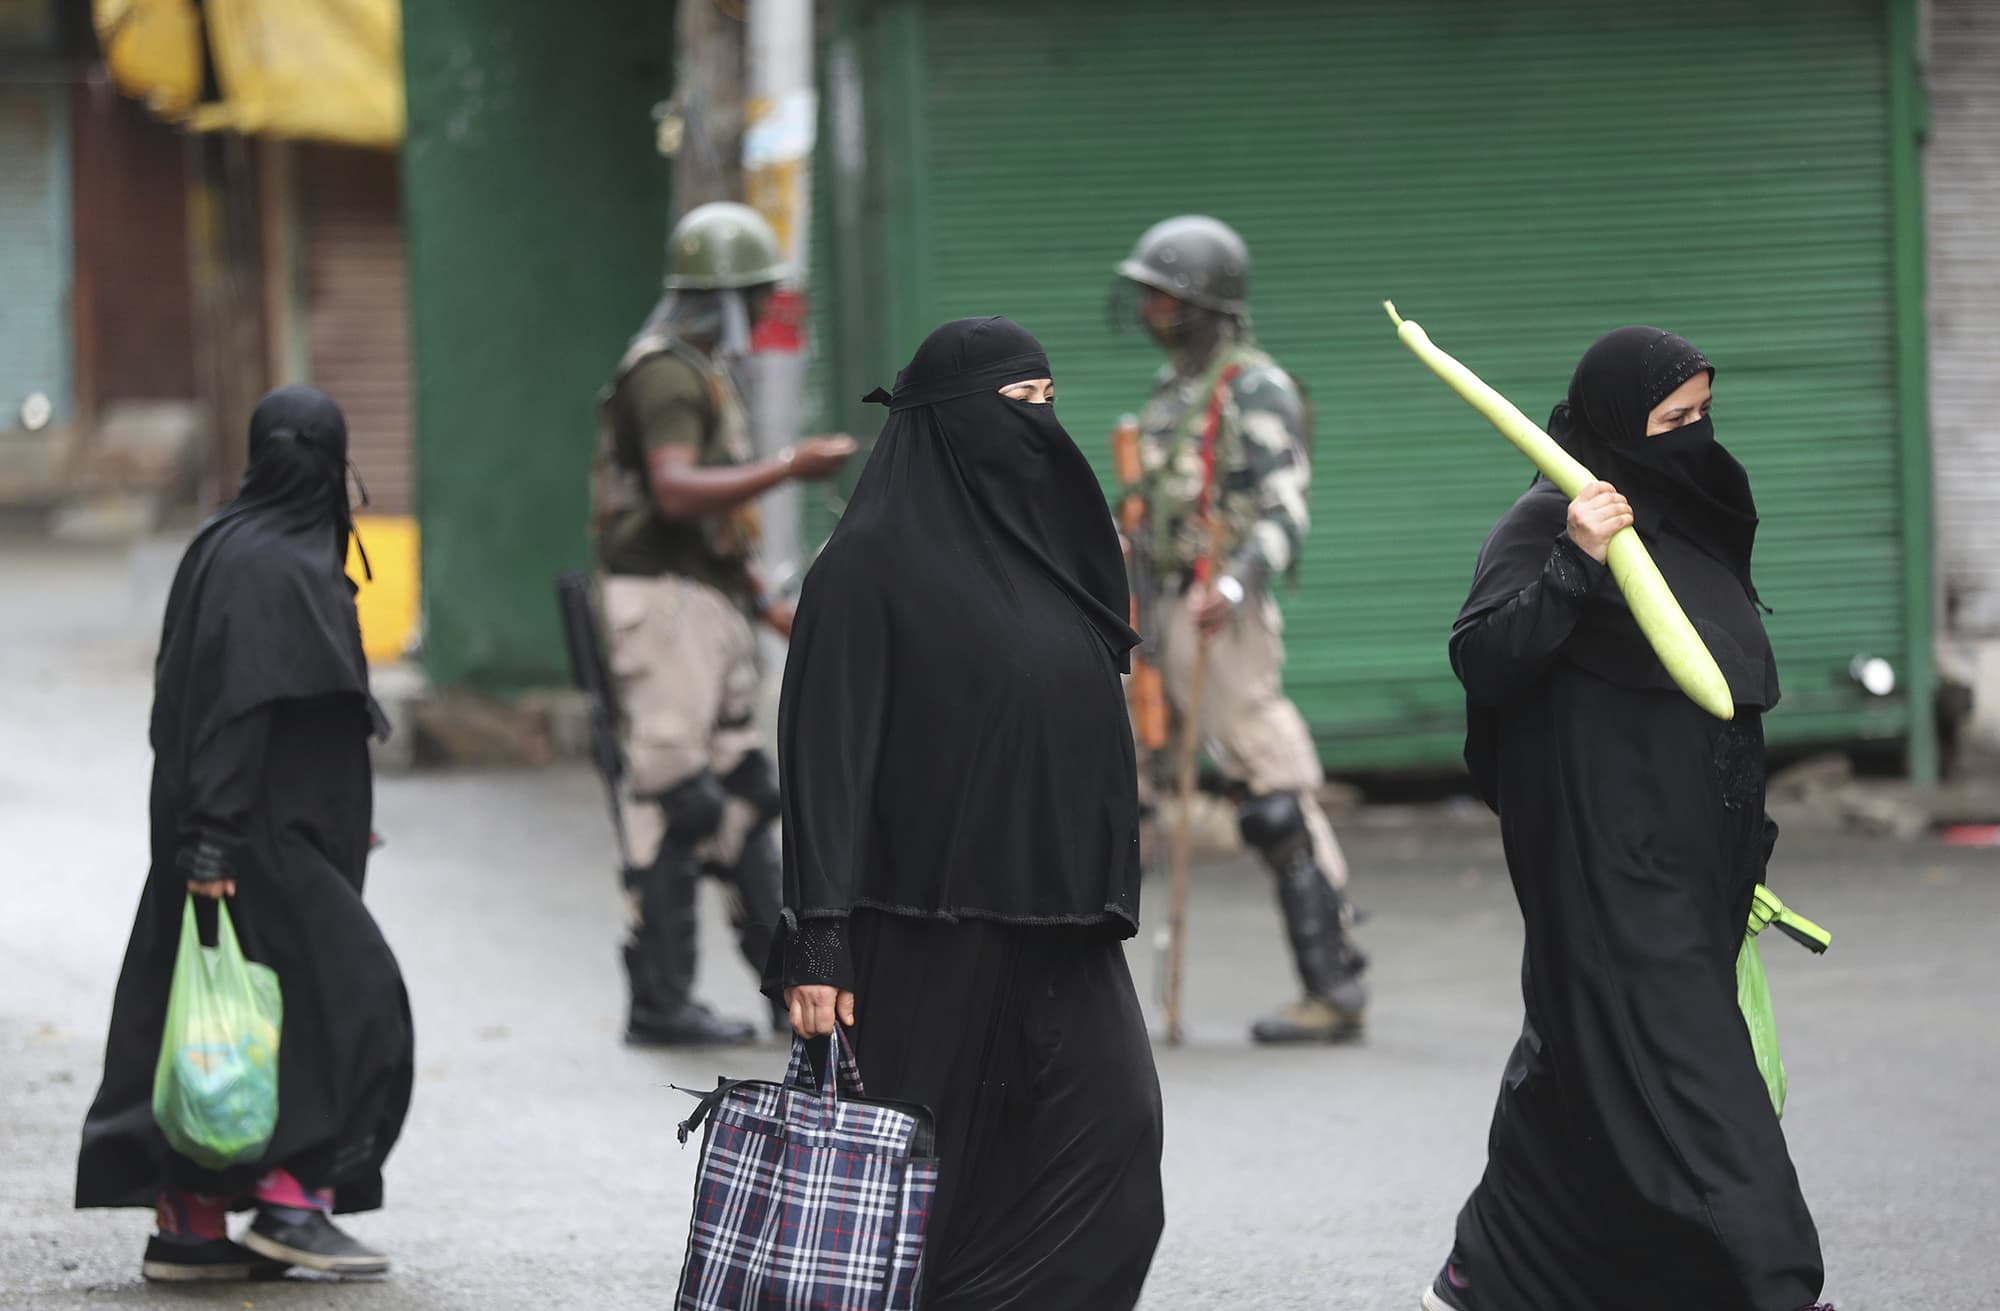 Kashmiri women hold bags filled with essentials and walk past Indian paramilitary soldiers closing off a street in Srinagar. ─ AP